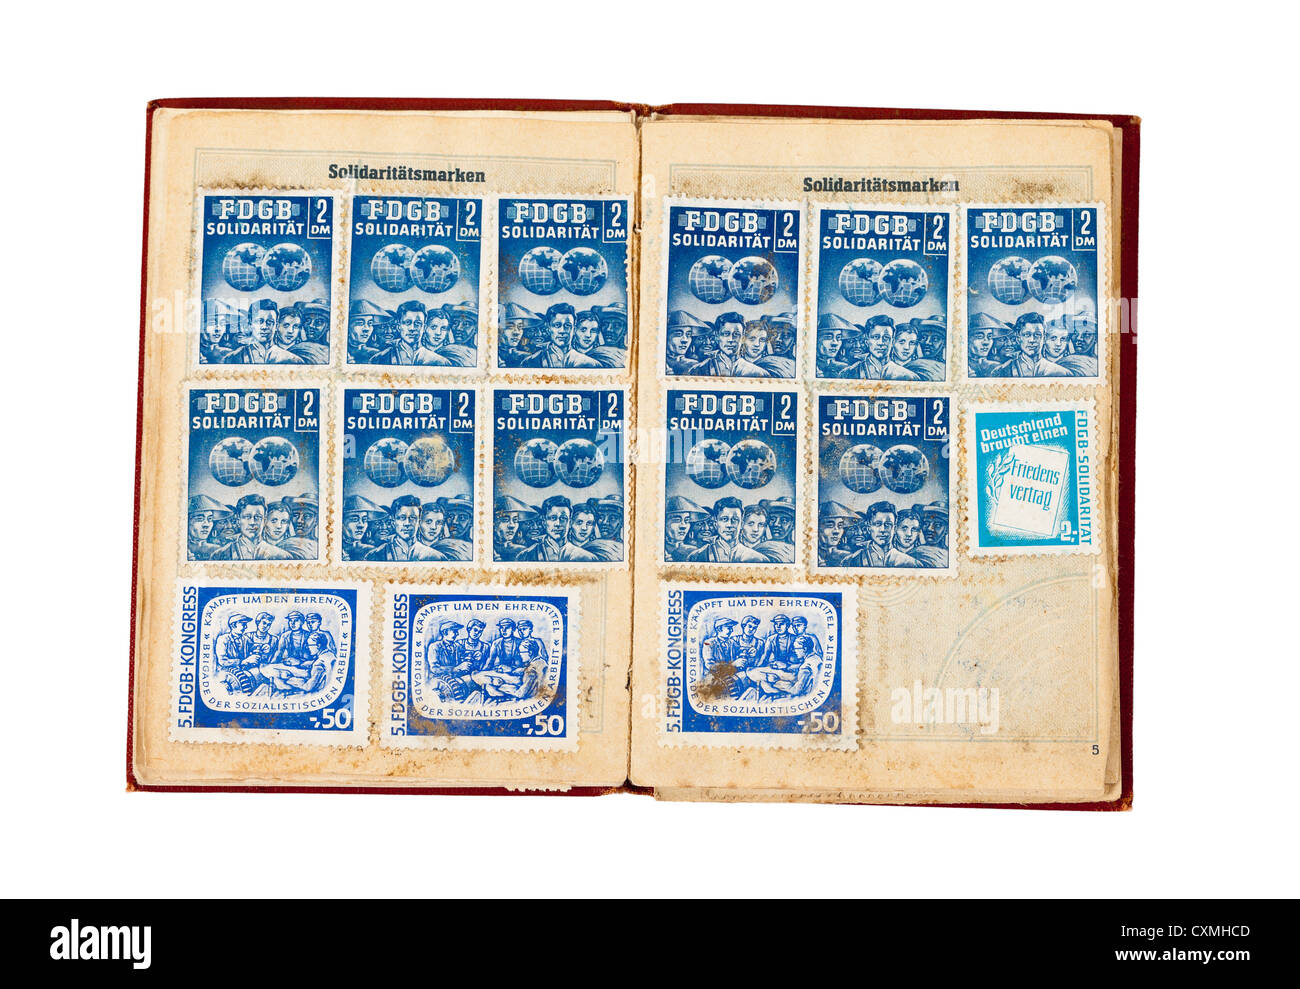 Union card of the former GDR (German Federation of Trade Unions) - Stock Image